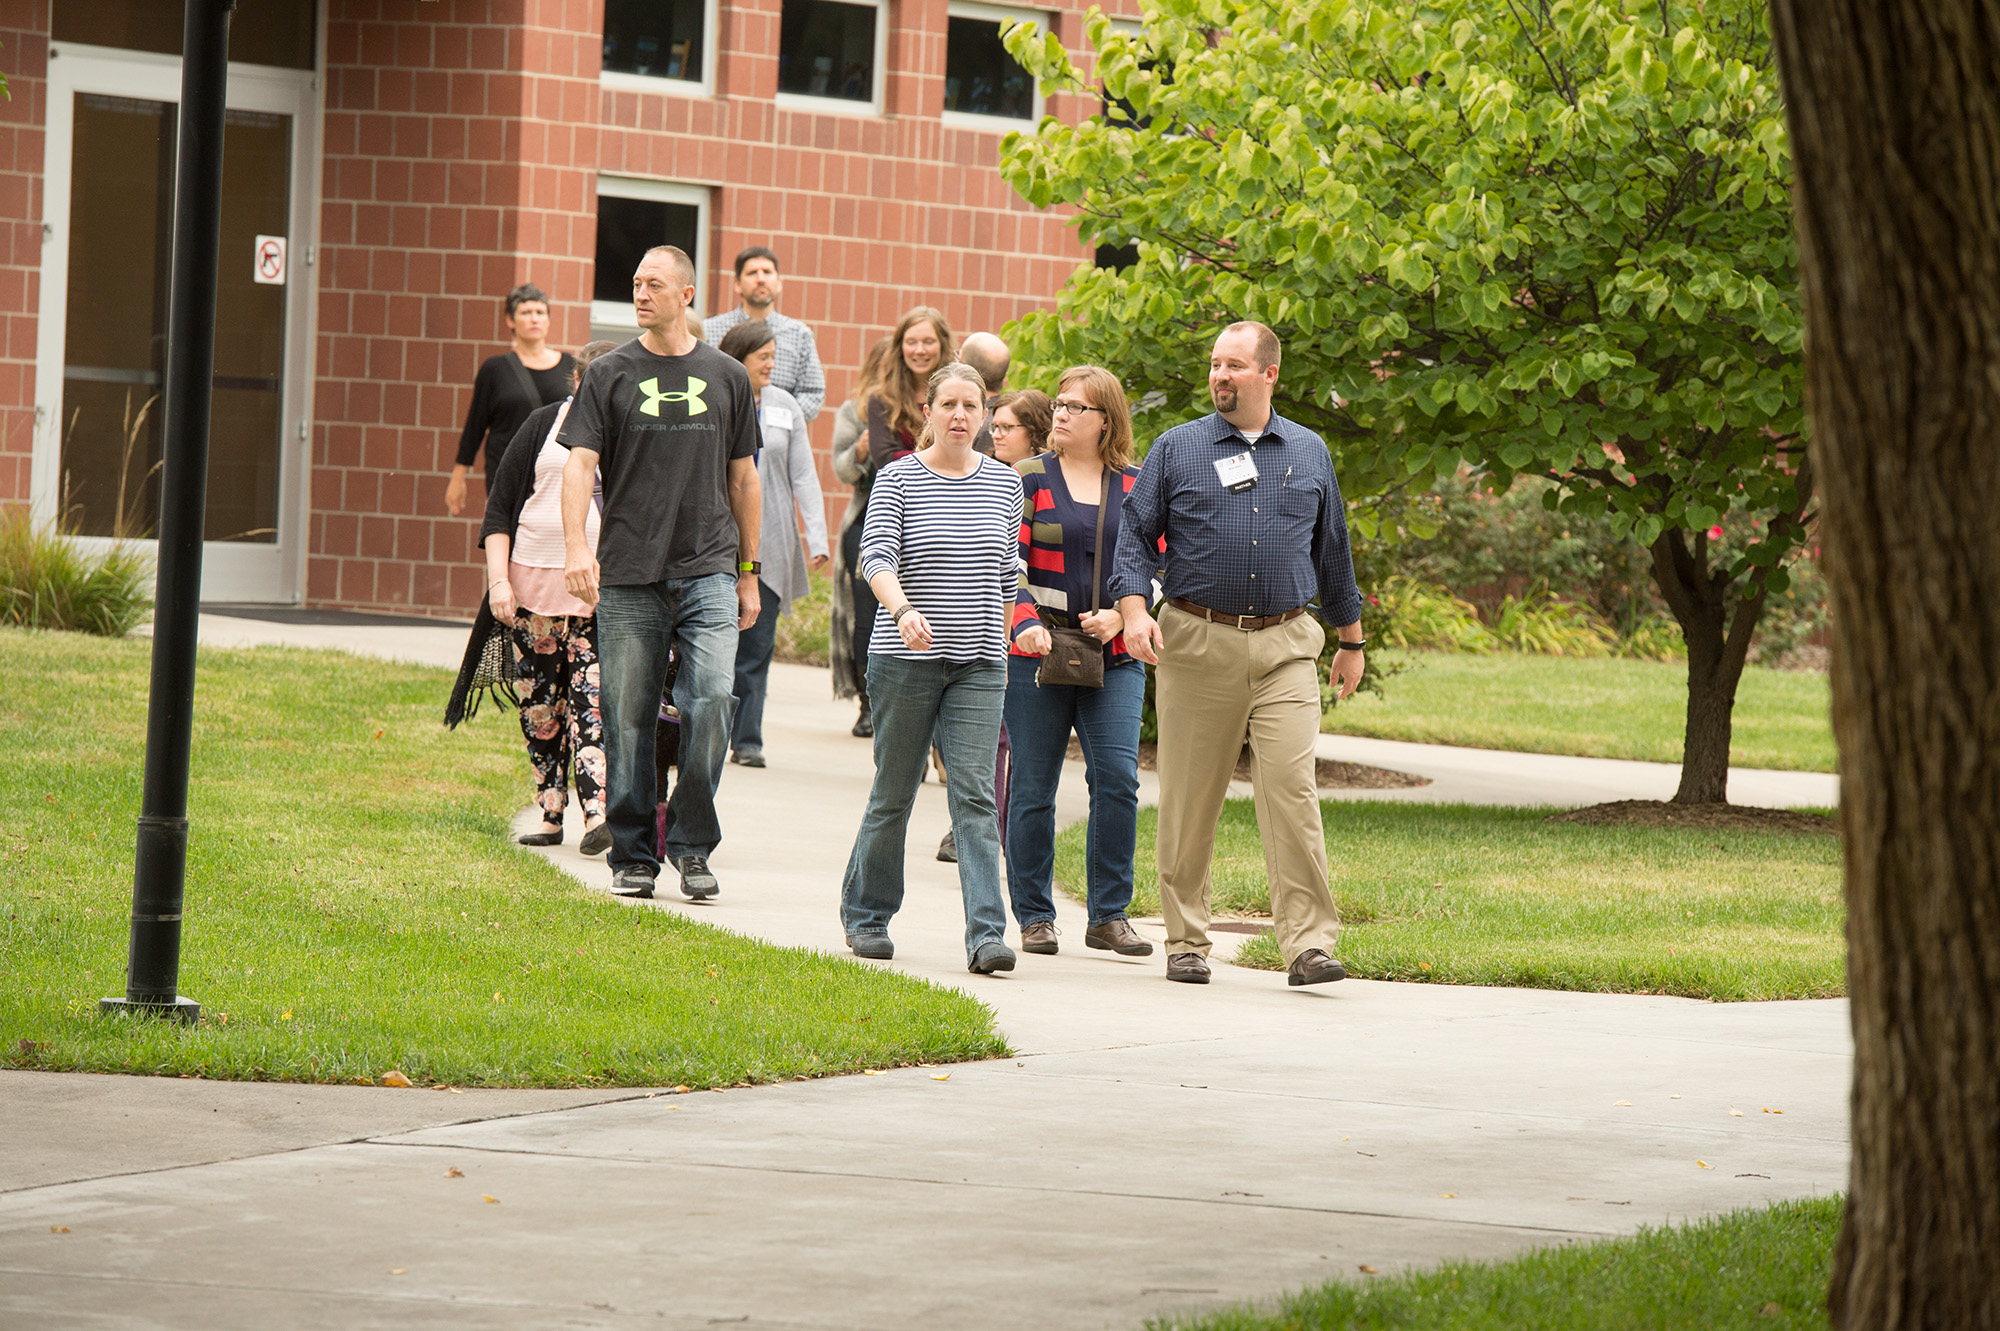 Members of the class of 1998 take a campus tour during their reunion.